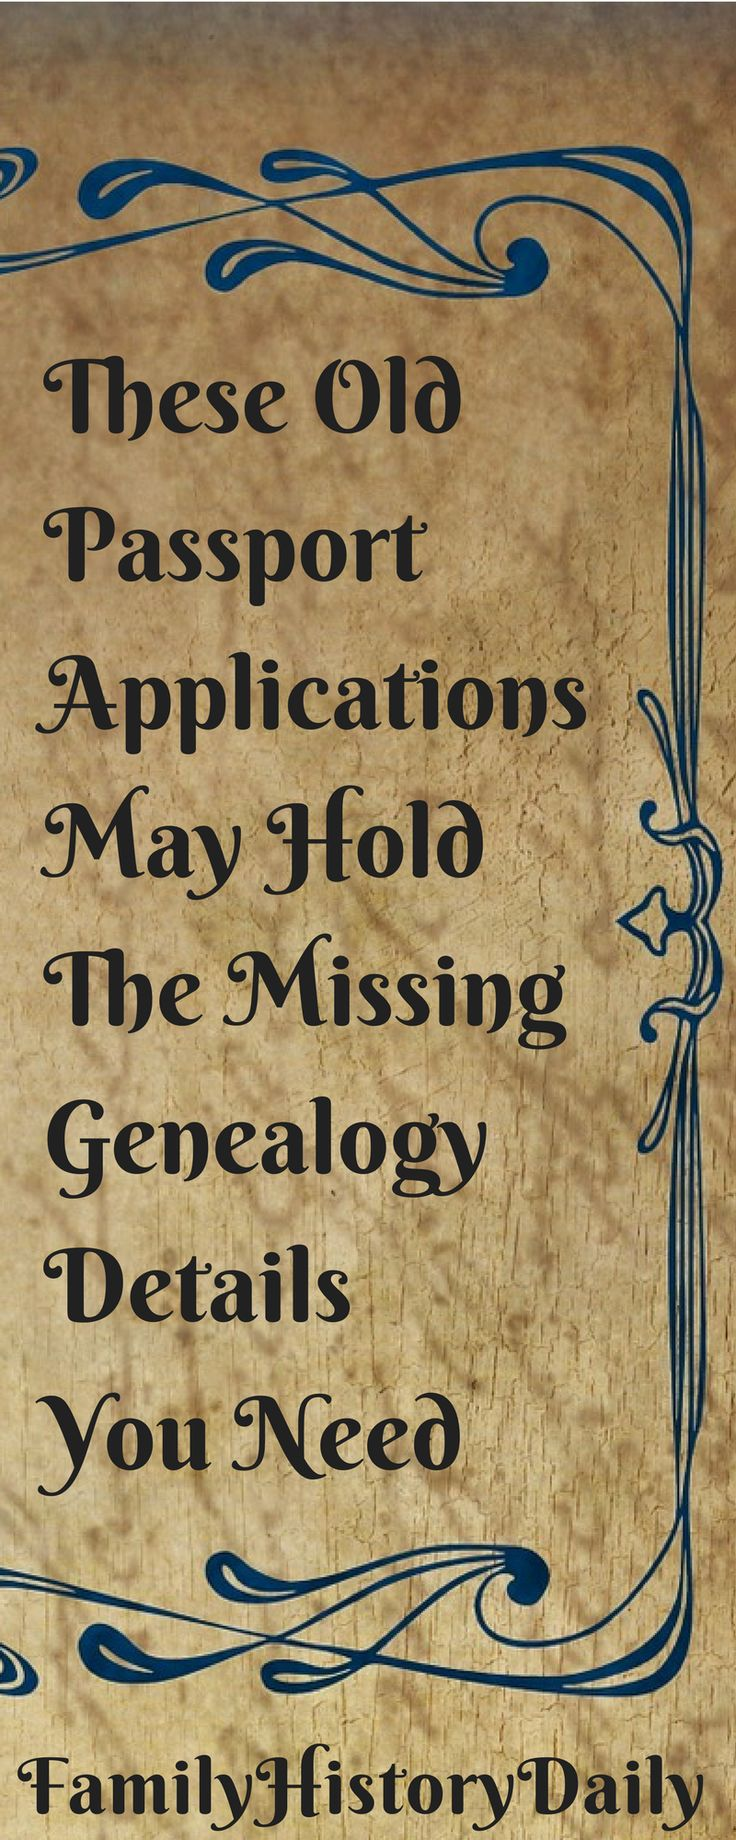 Free Genealogy Resources: Explore these free passport applications to discover new details about your family history.